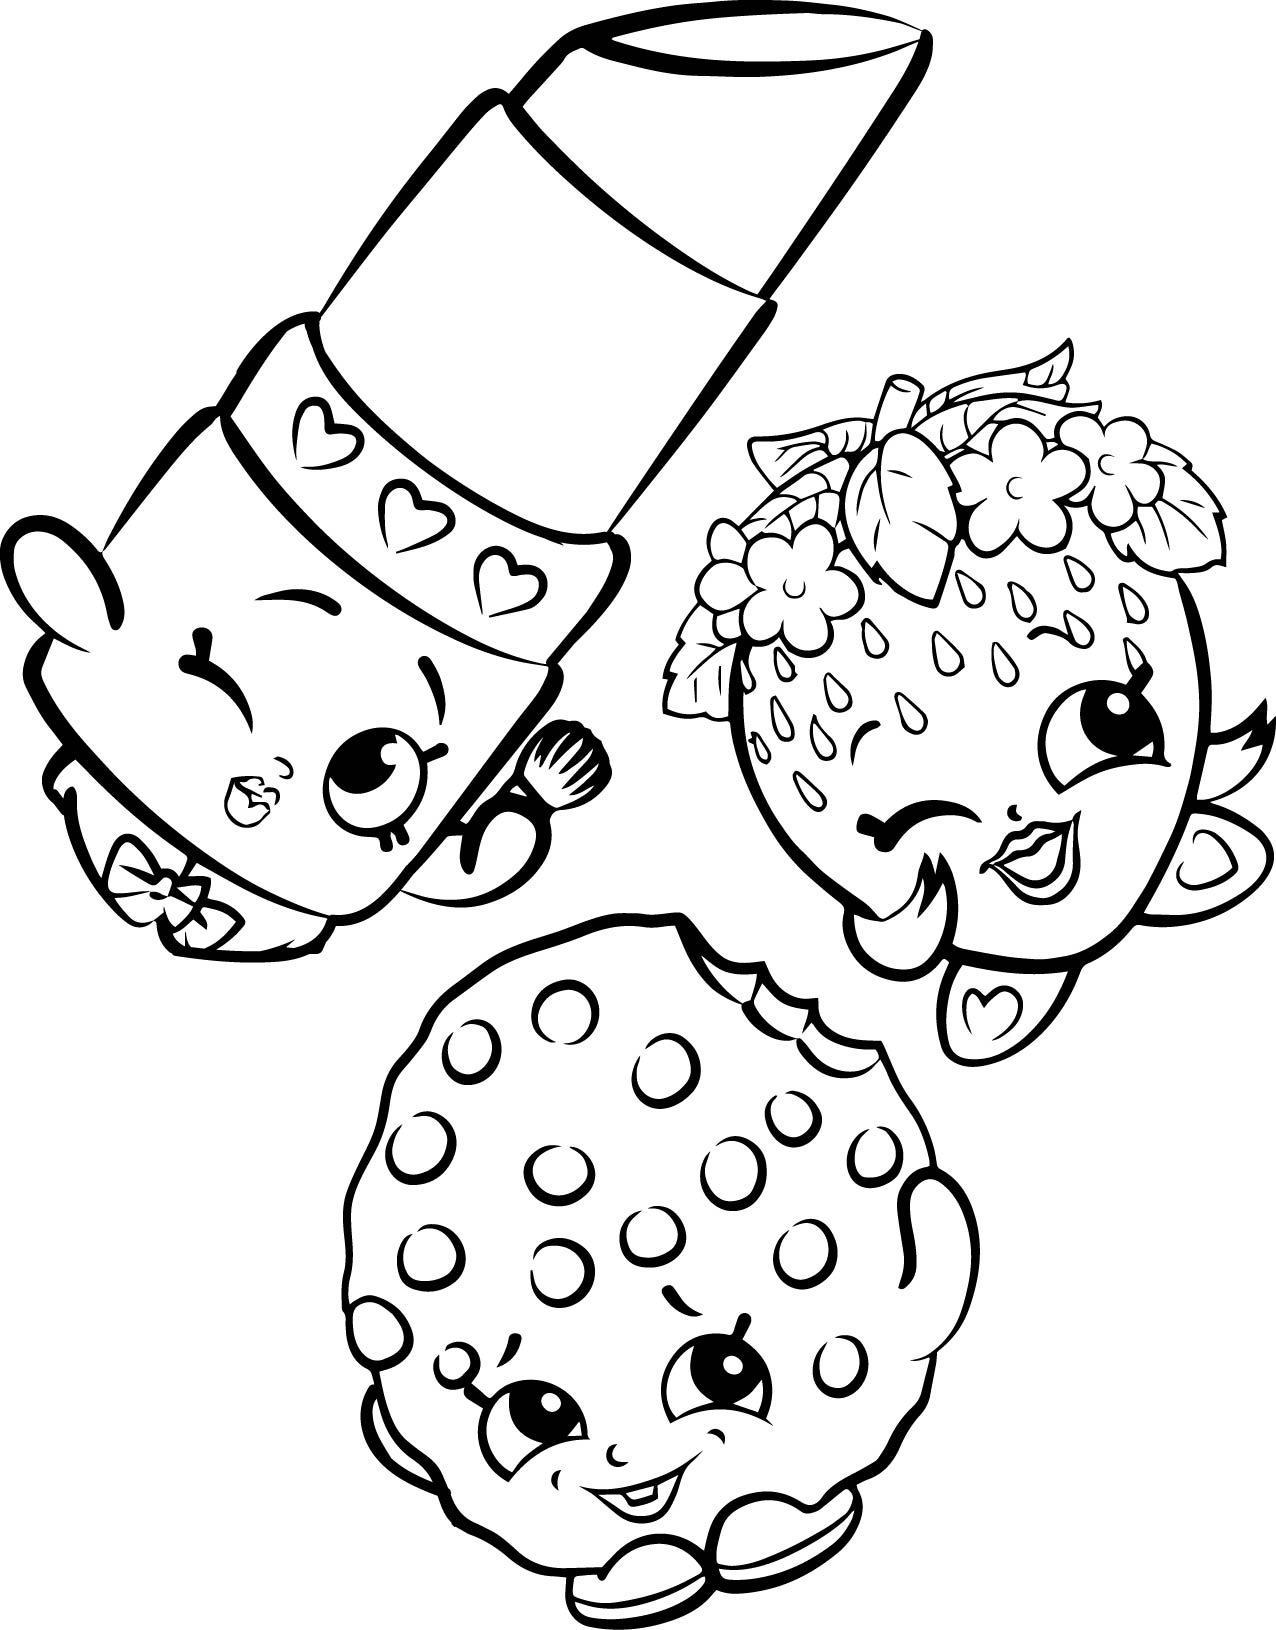 Shopkins Coloring Pages Best Coloring Pages For Kids Resep Masakan Nusantara